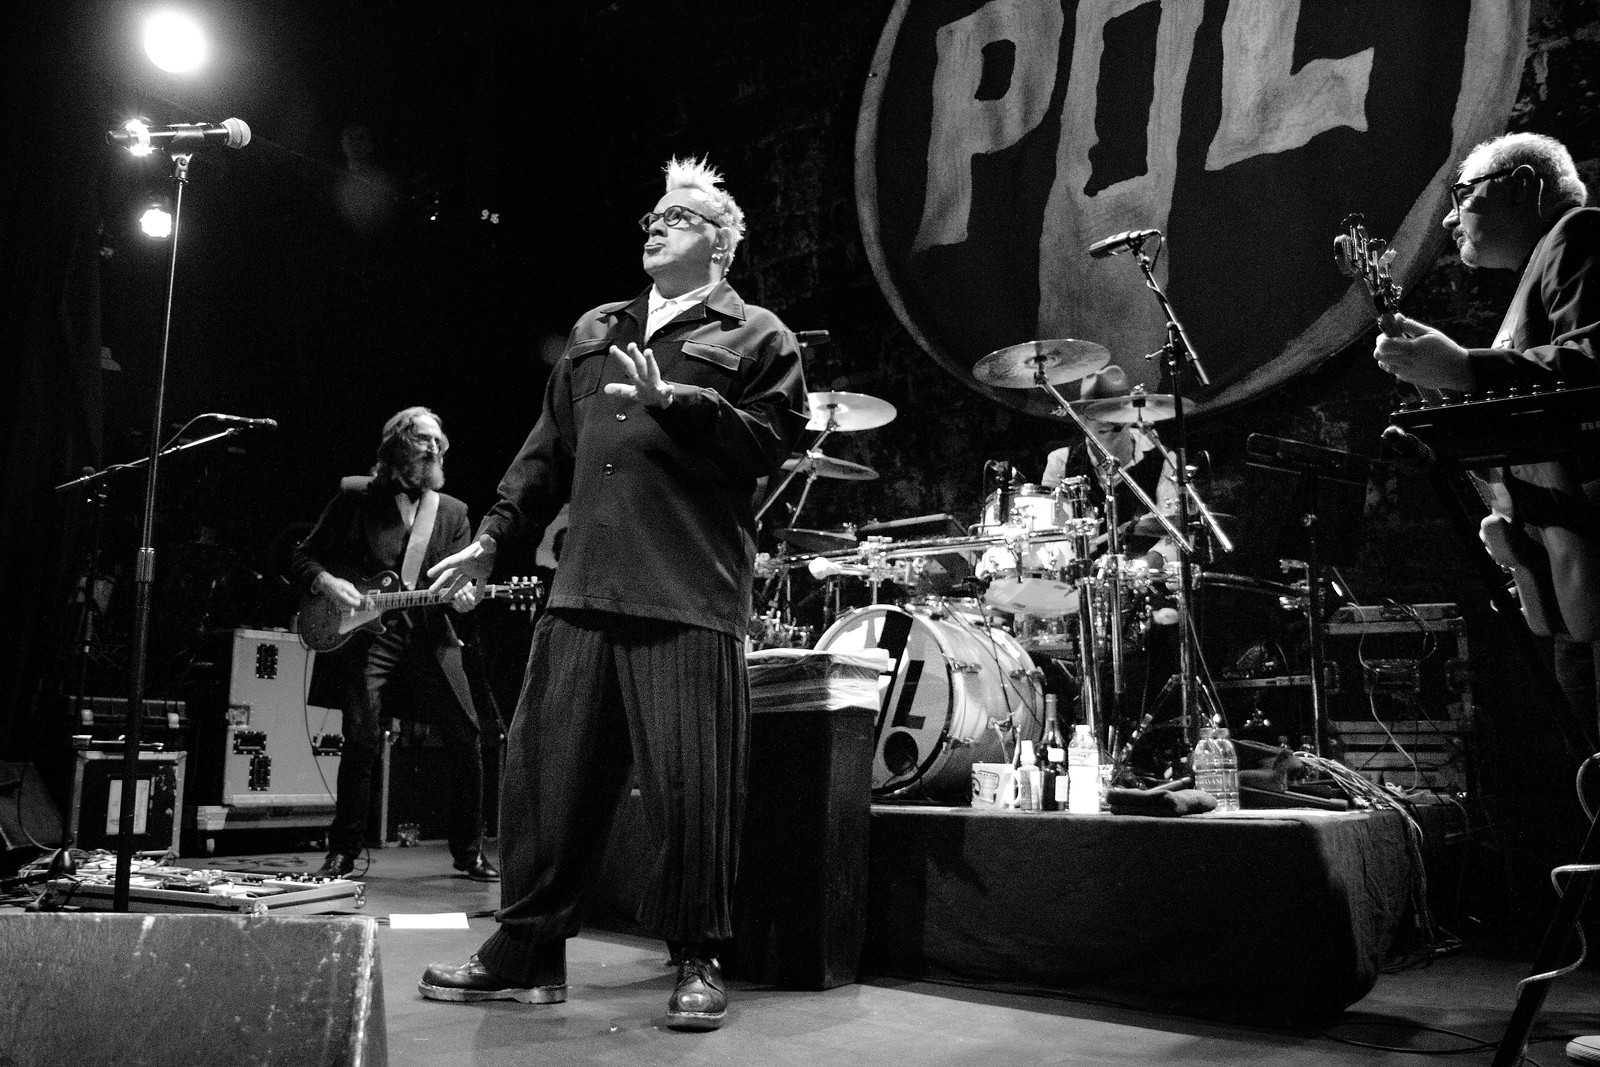 Public Image Ltd (PiL) - Johnny Rotten - Denver Concert